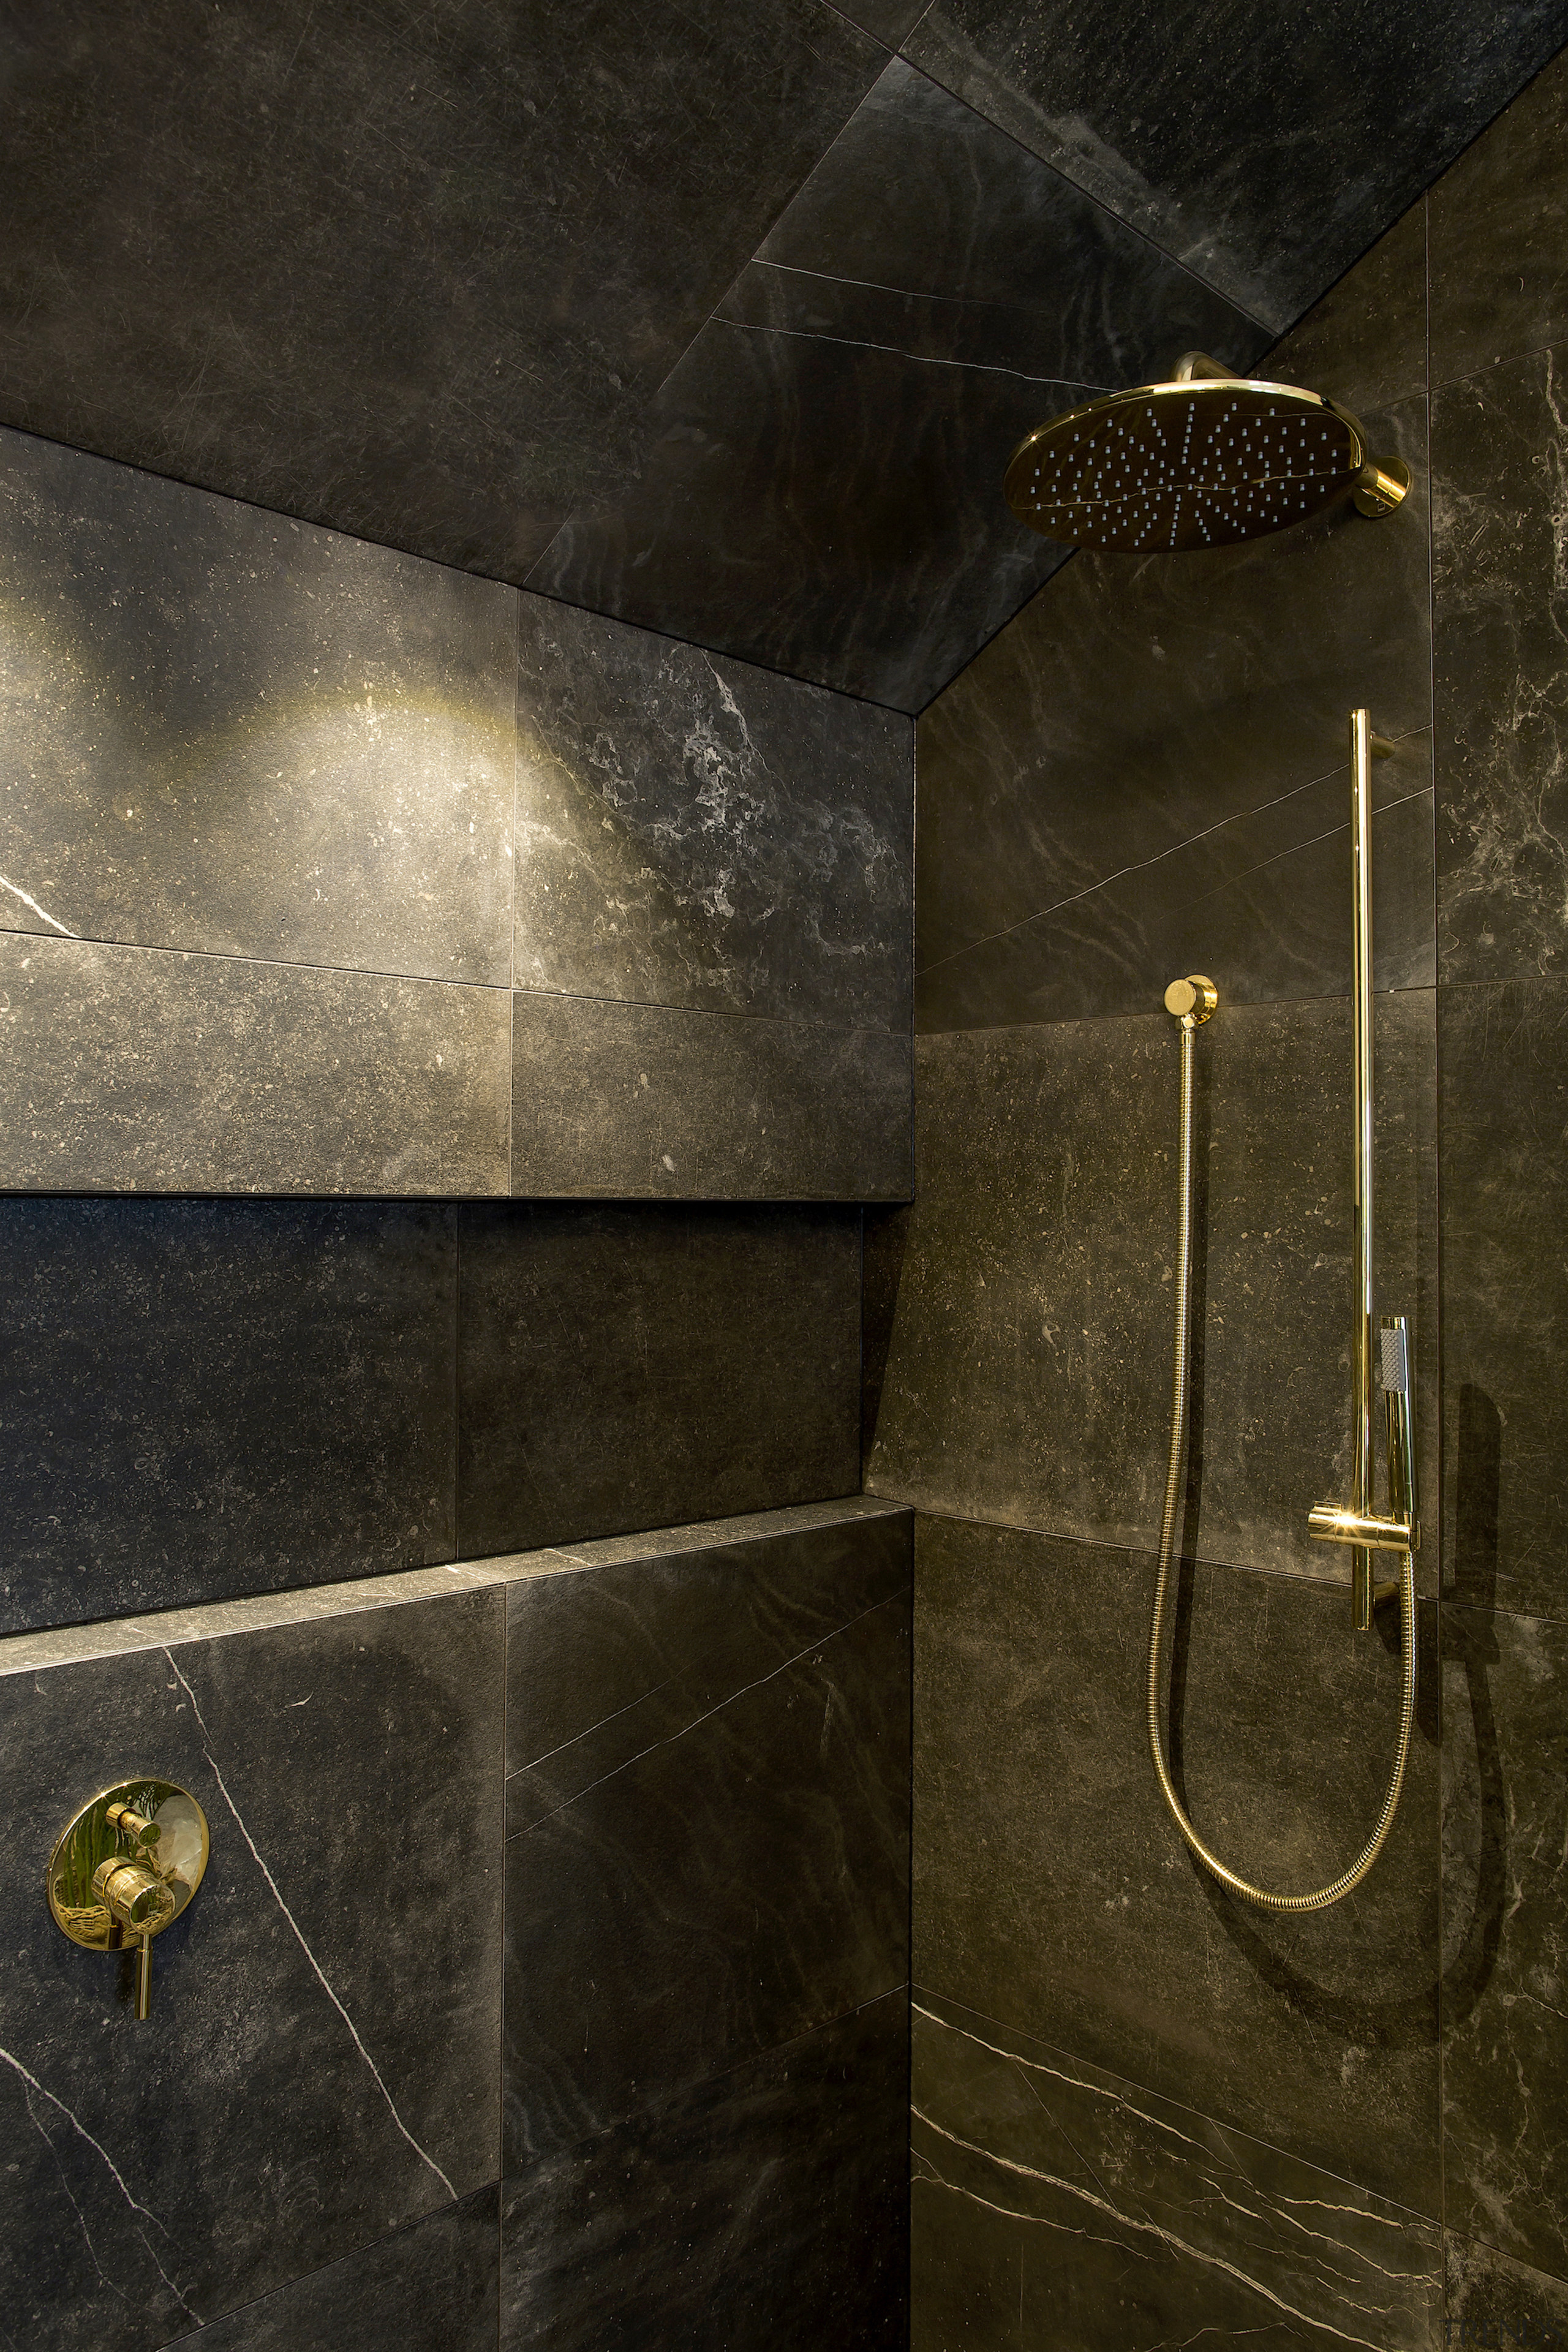 In the details – brushed brass shower fittings